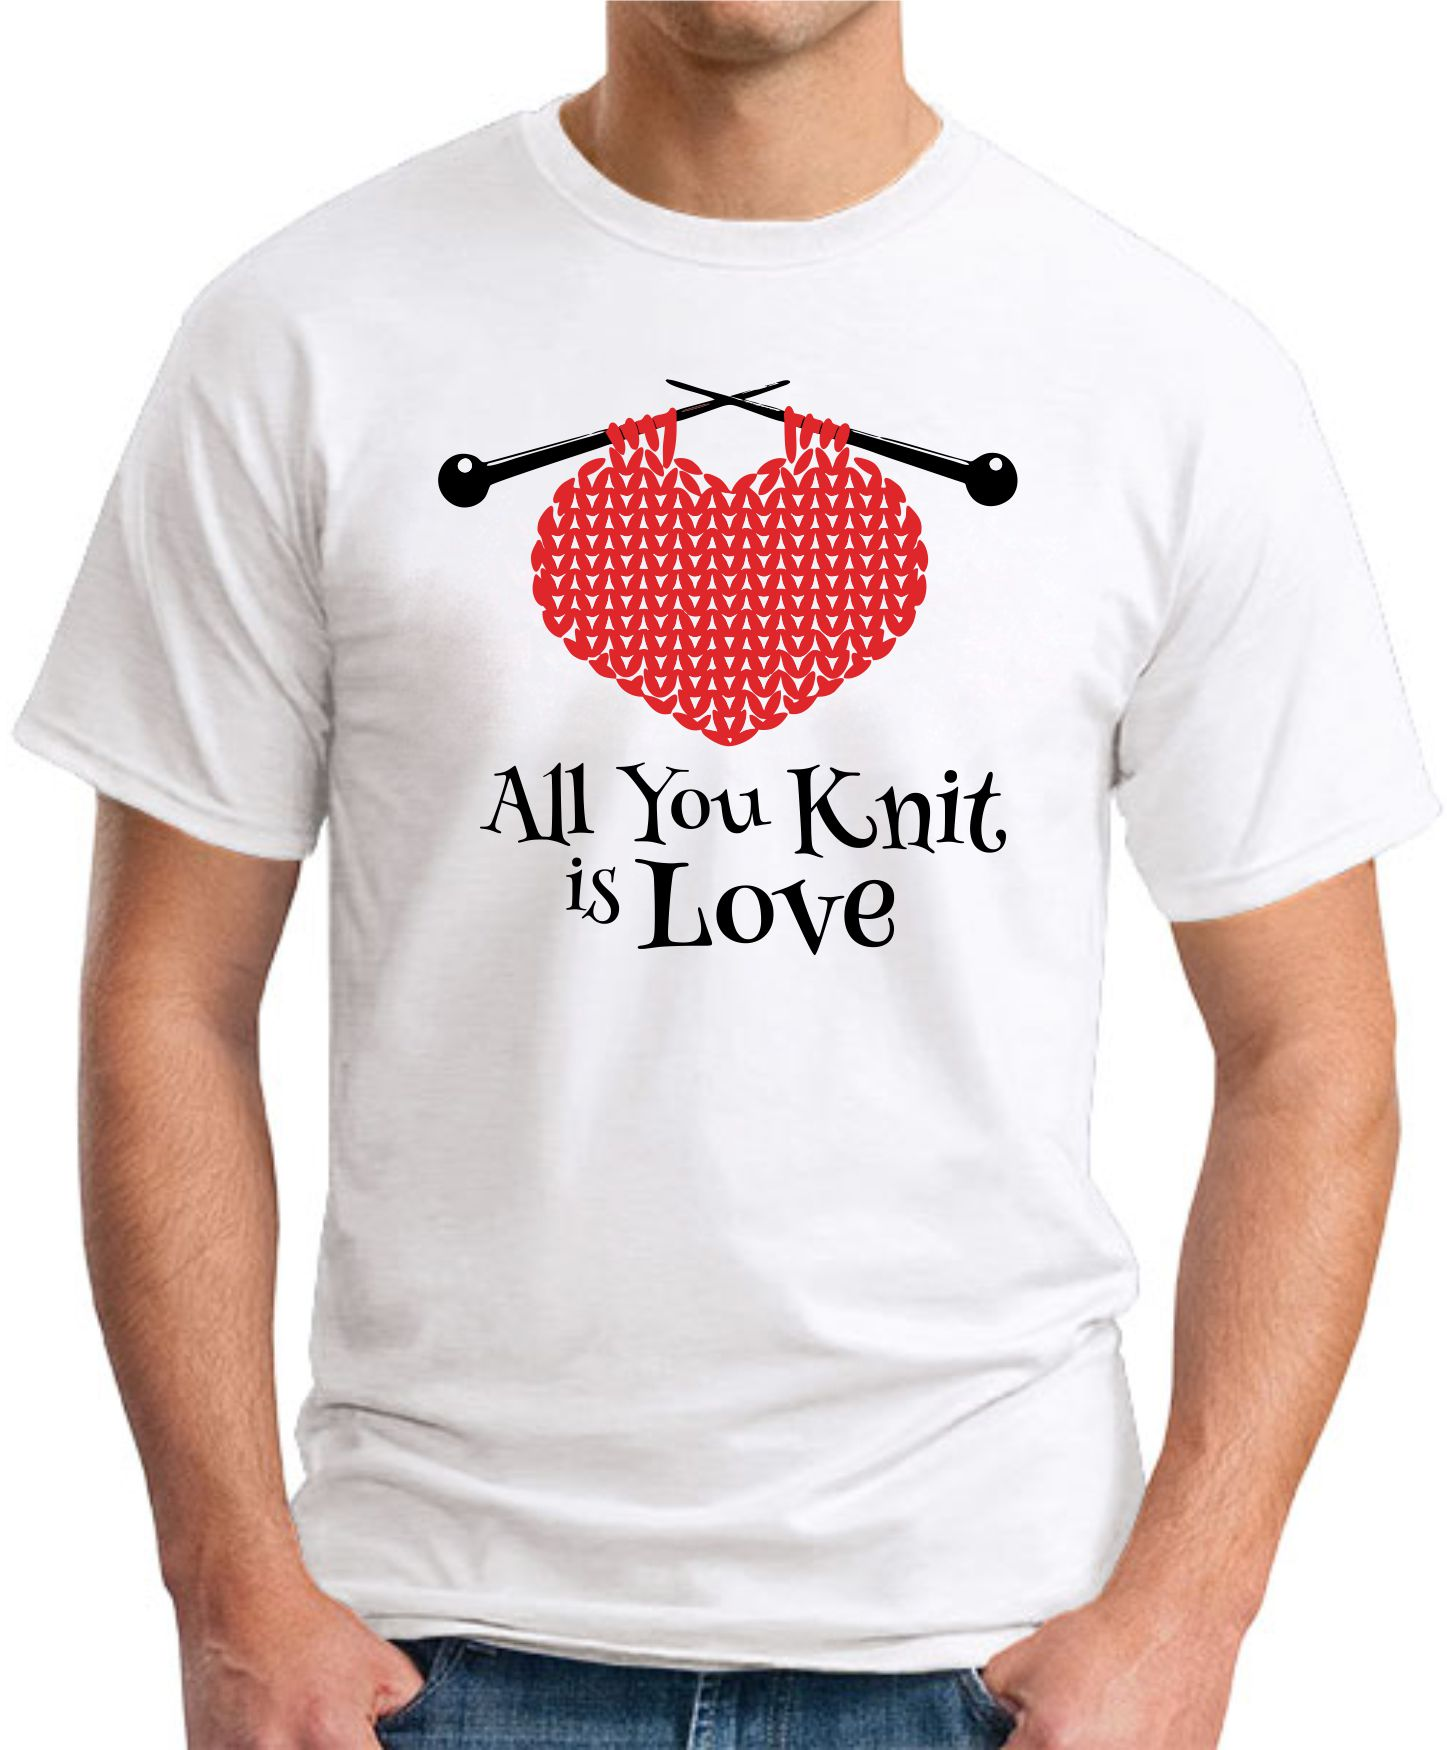 ALL YOU KNIT IS LOVE white